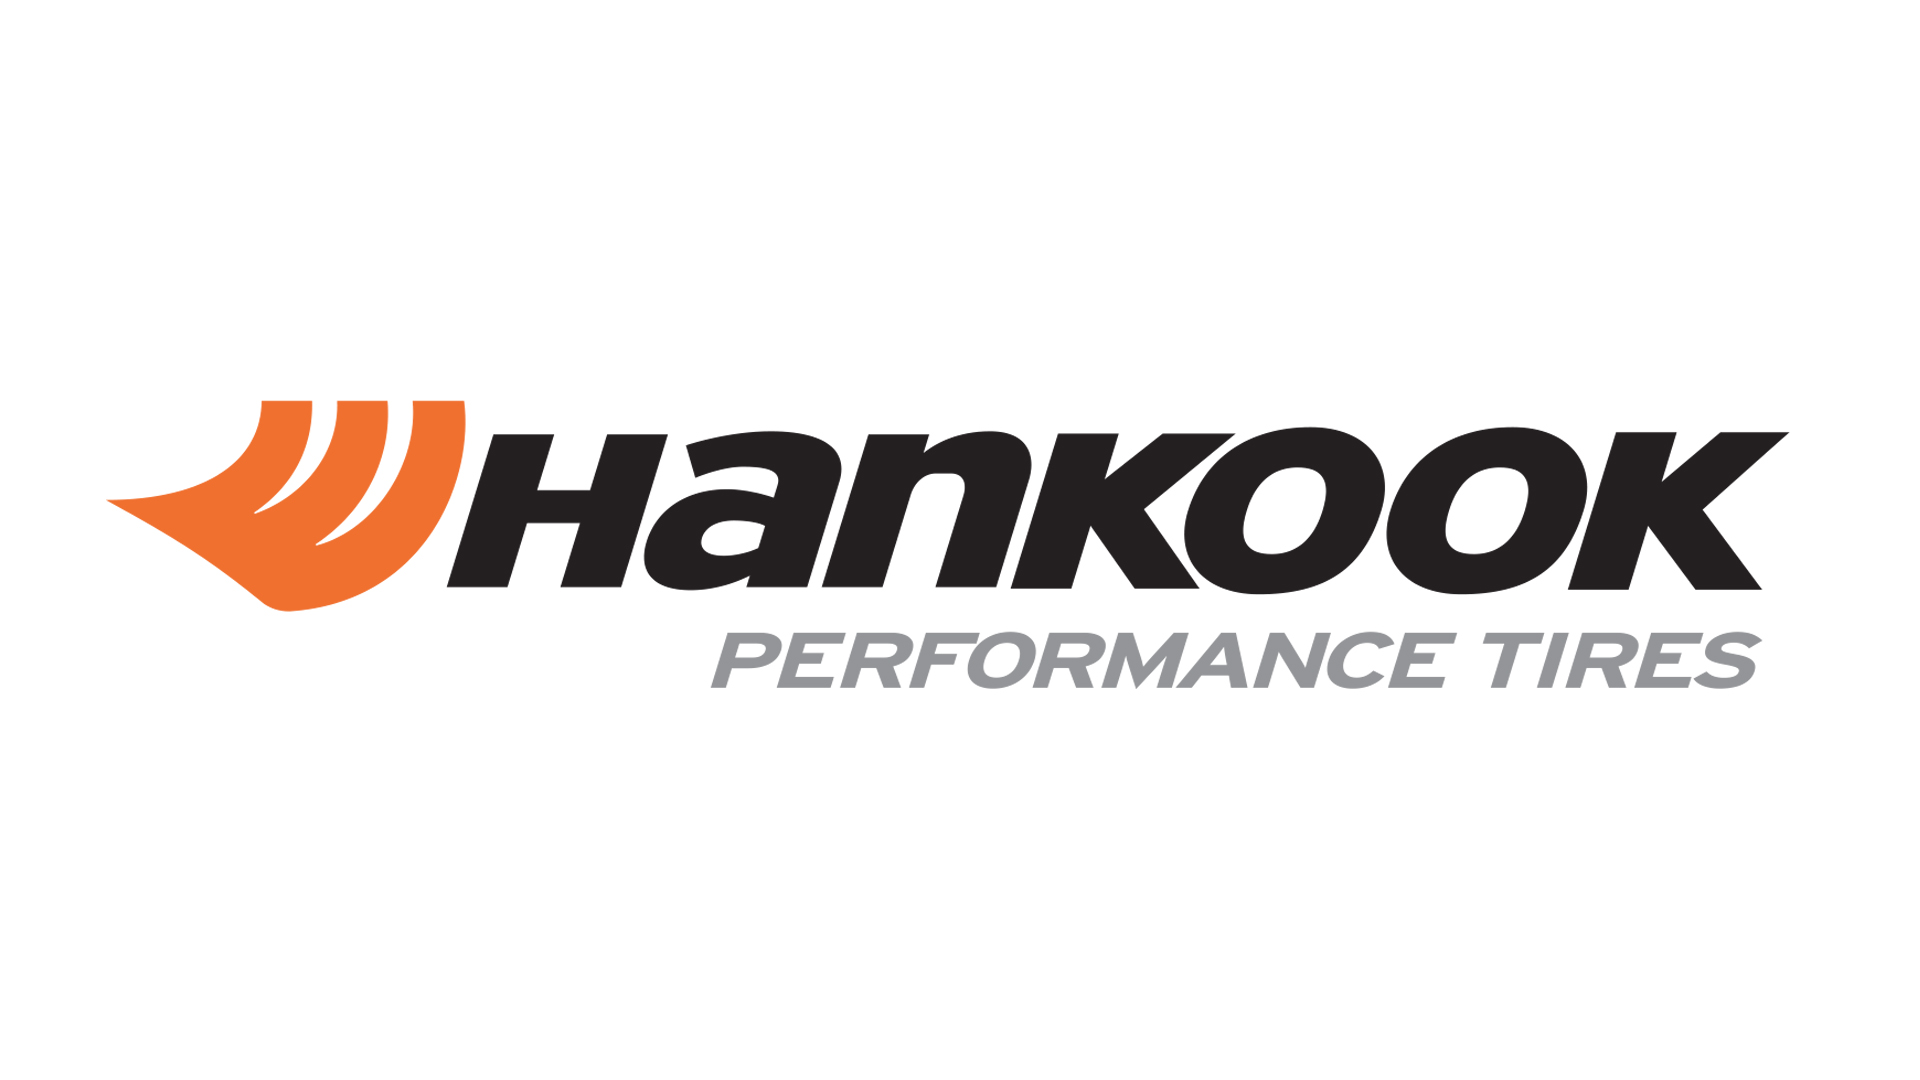 HANKOOK SELECTED AS OFFICIAL TYRE PARTNER FOR F4UAE IN 2017/18